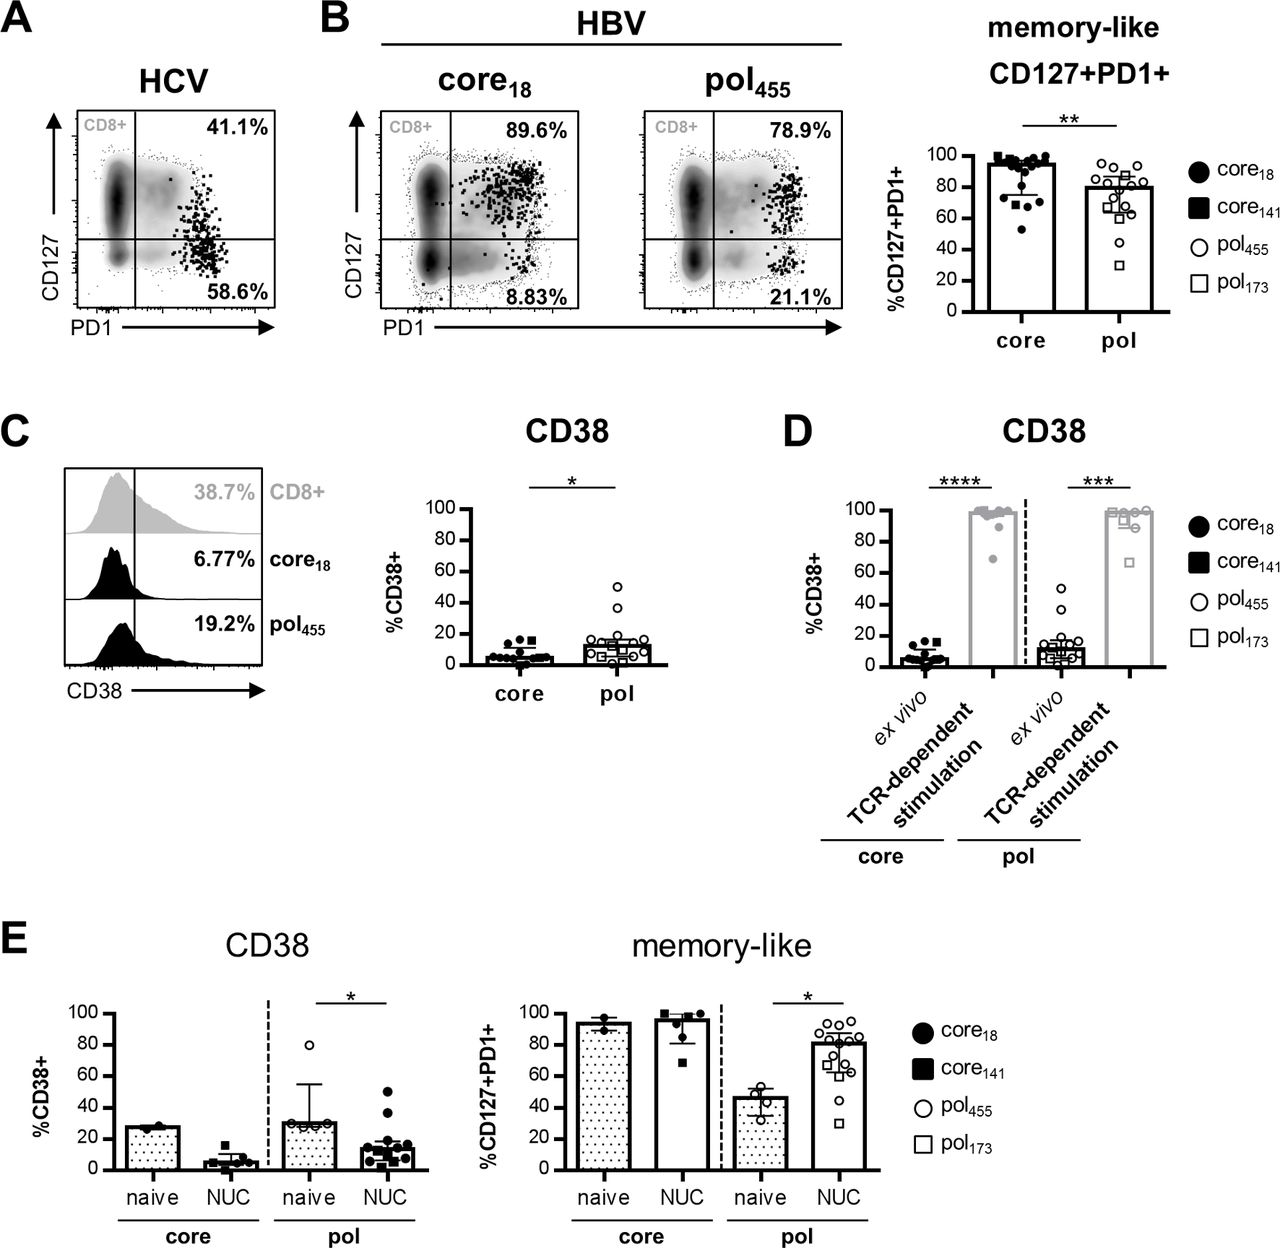 Phenotypic and functional differences of HBV core-specific